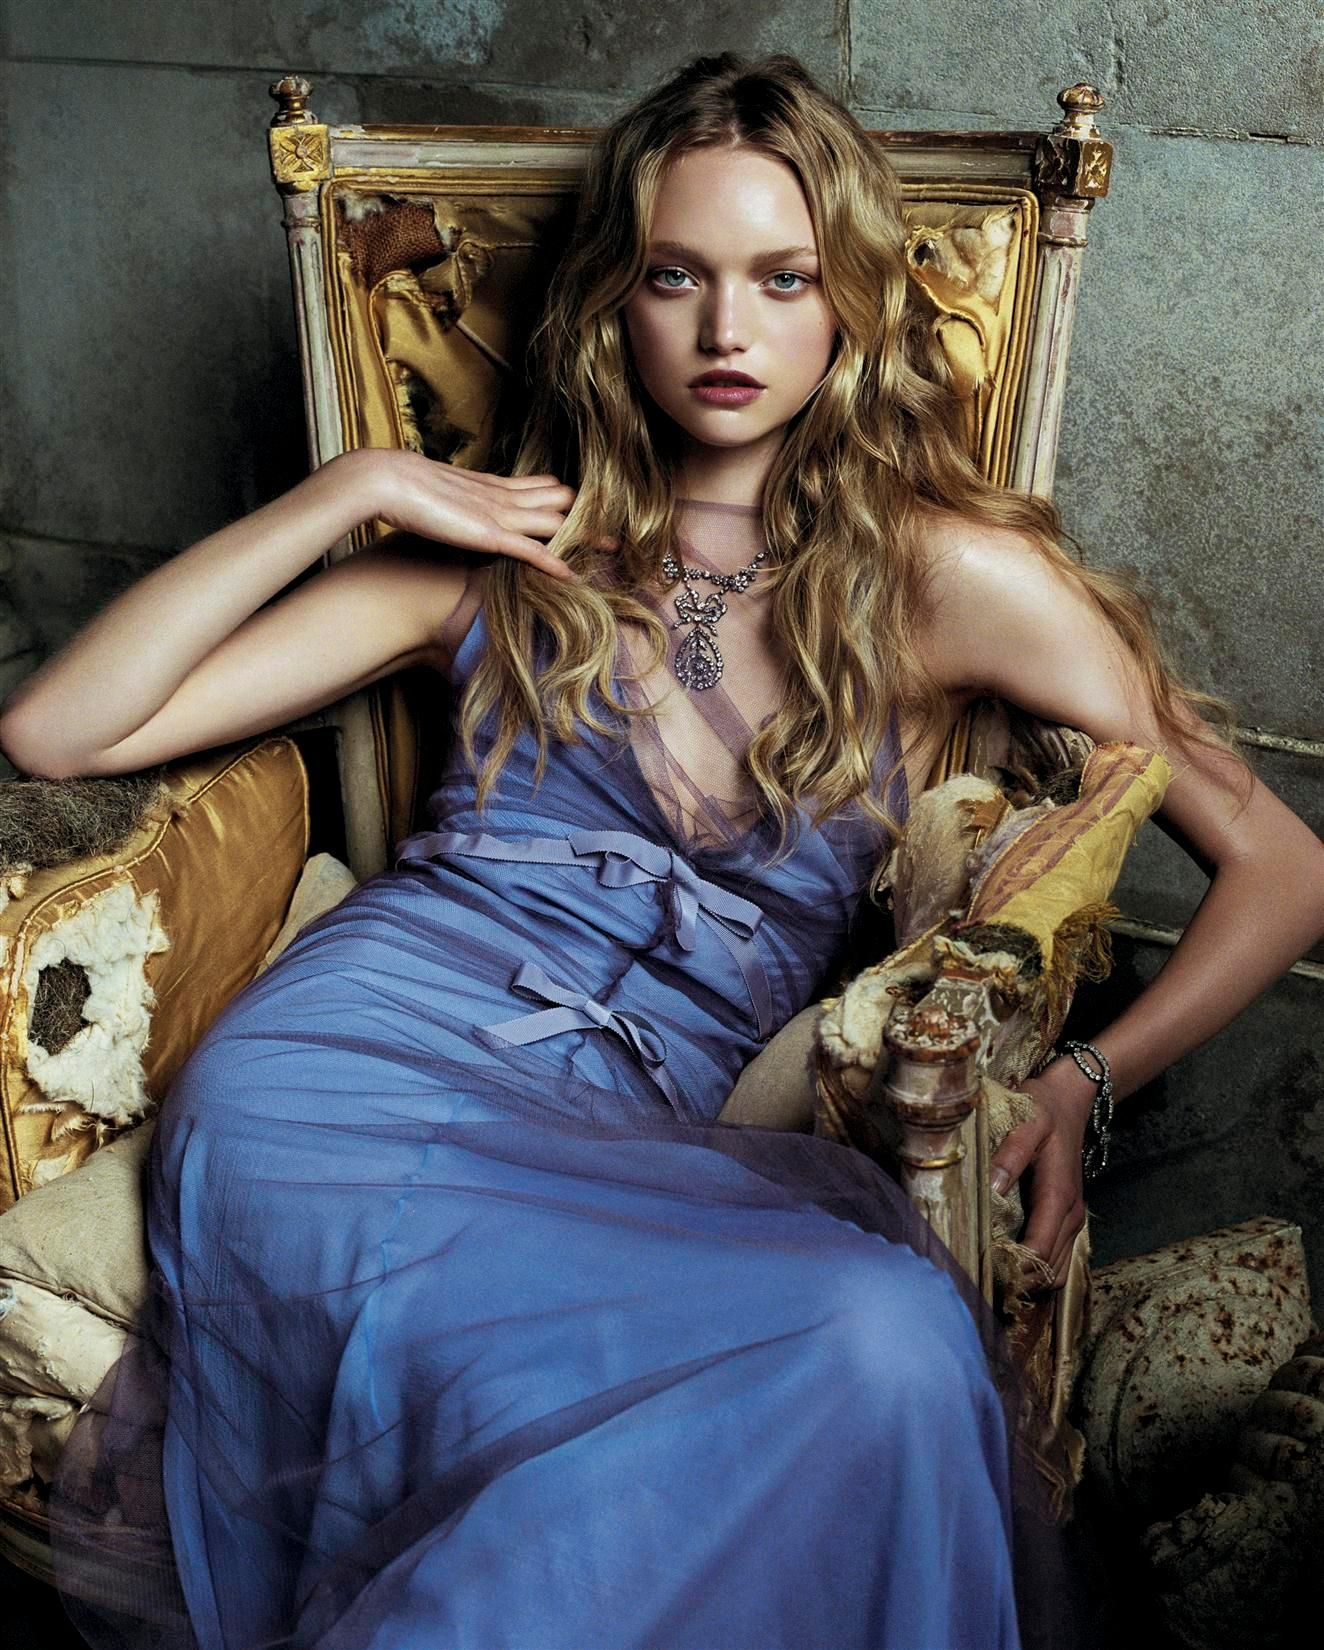 gemma ward voguegemma ward instagram, gemma ward vk, gemma ward mermaid, gemma ward husband, gemma ward chanel 2007, gemma ward short hair, gemma ward vogue, gemma ward fmd, gemma ward insta, gemma ward listal, gemma ward tumblr, gemma ward pirates of the caribbean, gemma ward fashion spot, gemma ward 2015, gemma ward victoria's secret, gemma ward fashion spot 2004, gemma ward vogue australia, gemma ward cello, gemma ward interview, gemma ward wiki